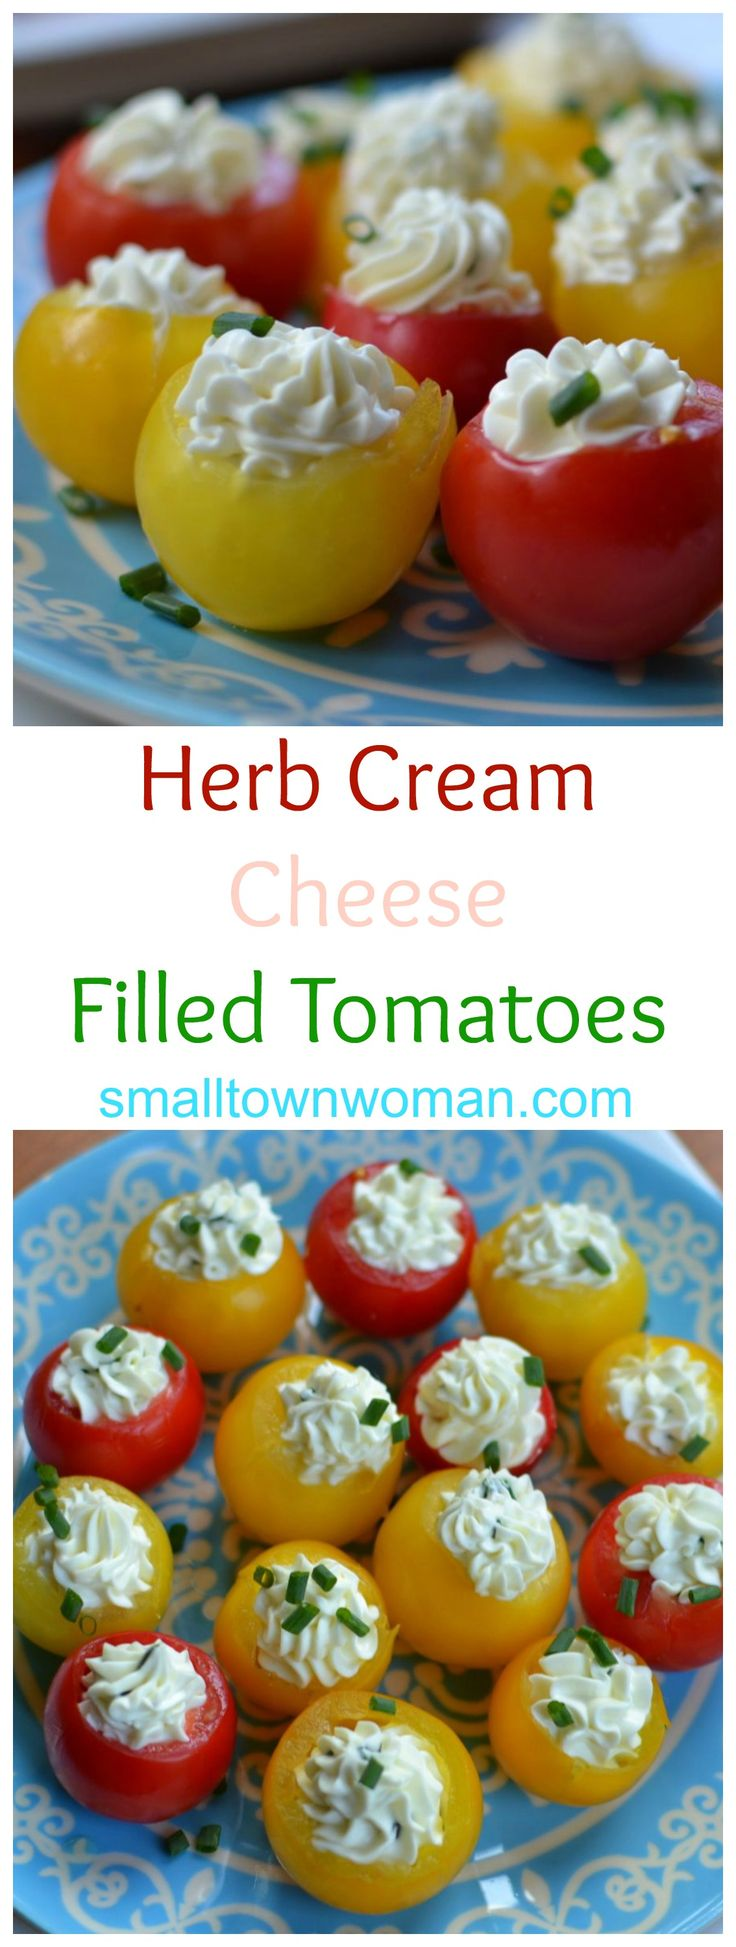 These Herb Cream Cheese Stuffed Tomatoes are perfect for the long lazy days of summer. Cherry tomatoes are that their peak of flavor and the timing could not be better